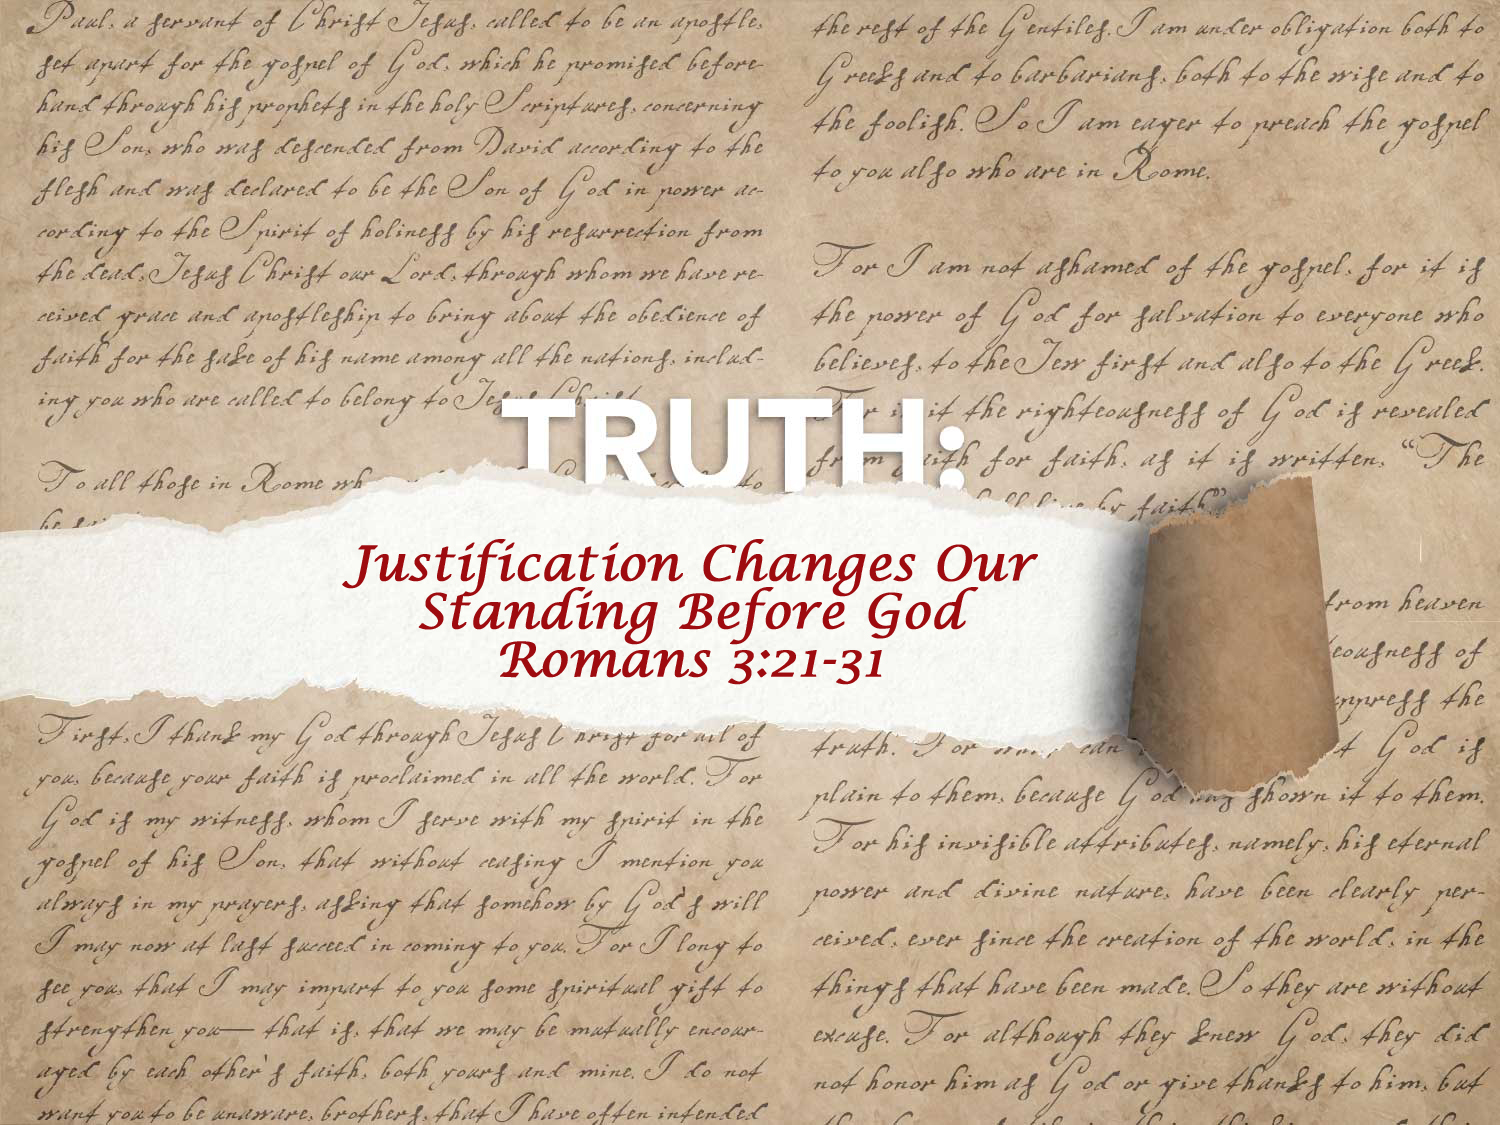 Romans 3:21-31 An Introduction To The Doctrine of Justification